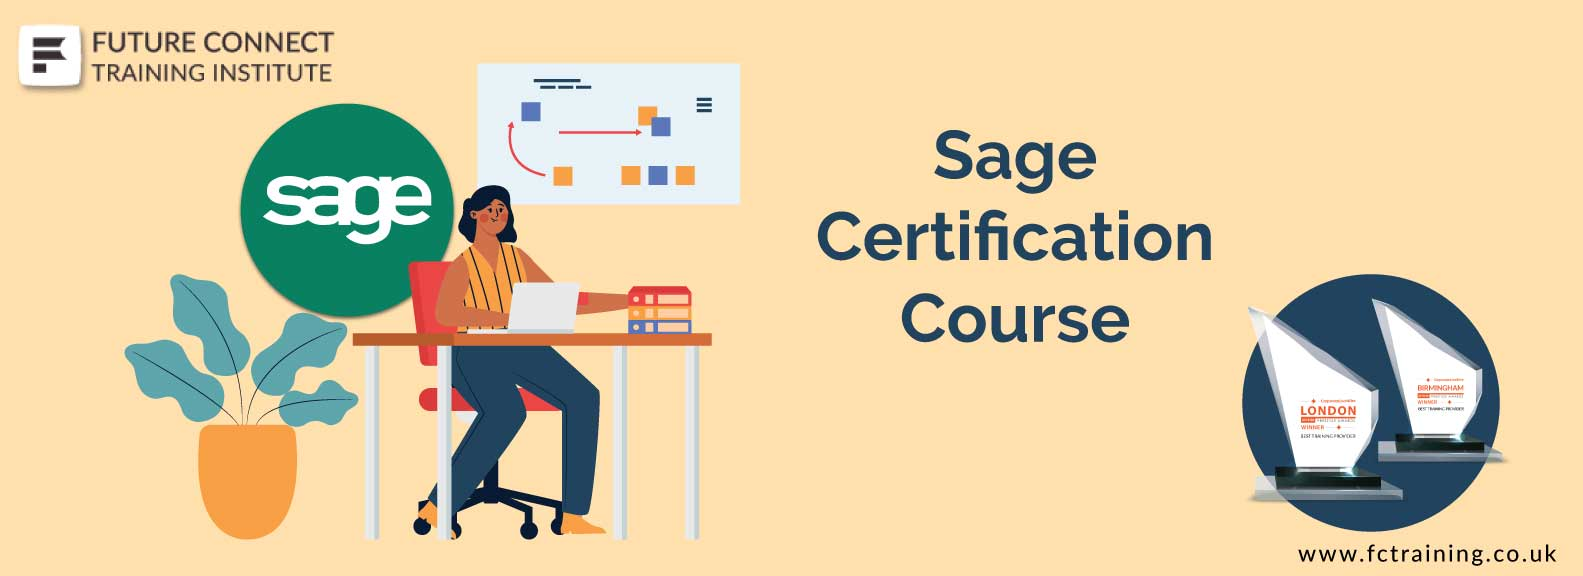 Sage Certification Course